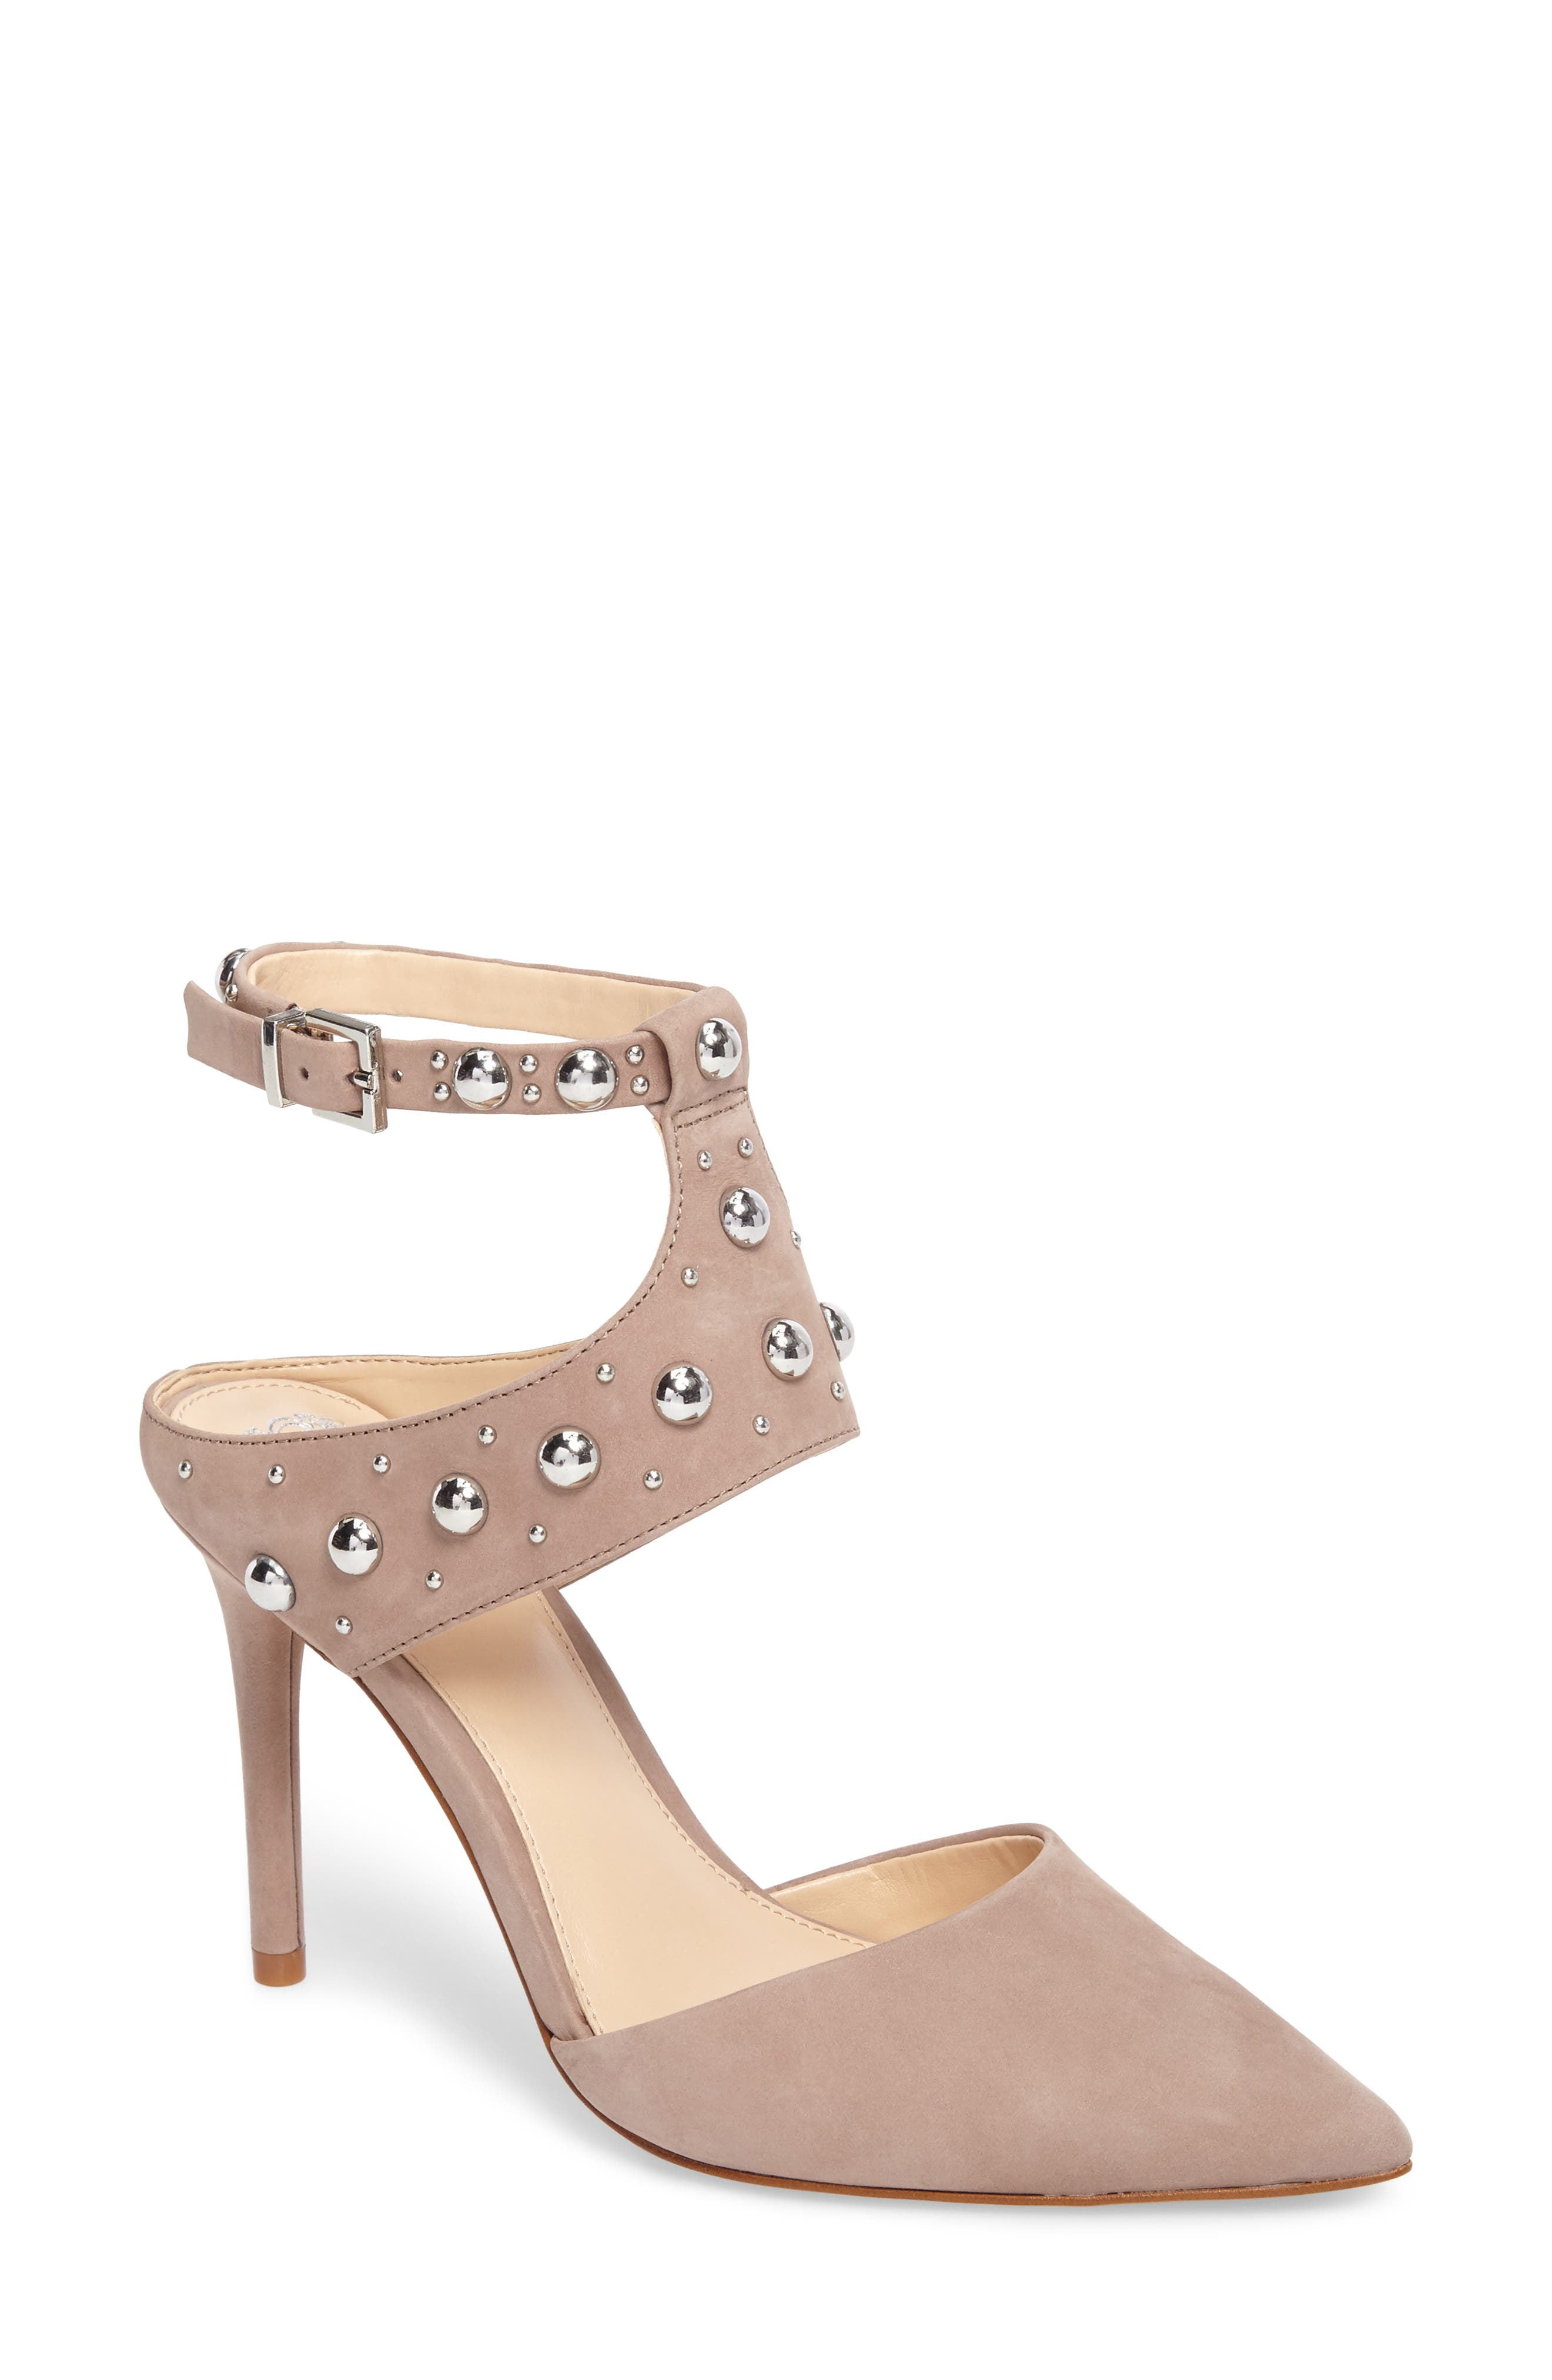 Ledana Studded Pump,                         Main,                         color, Mink Nubuck Leather